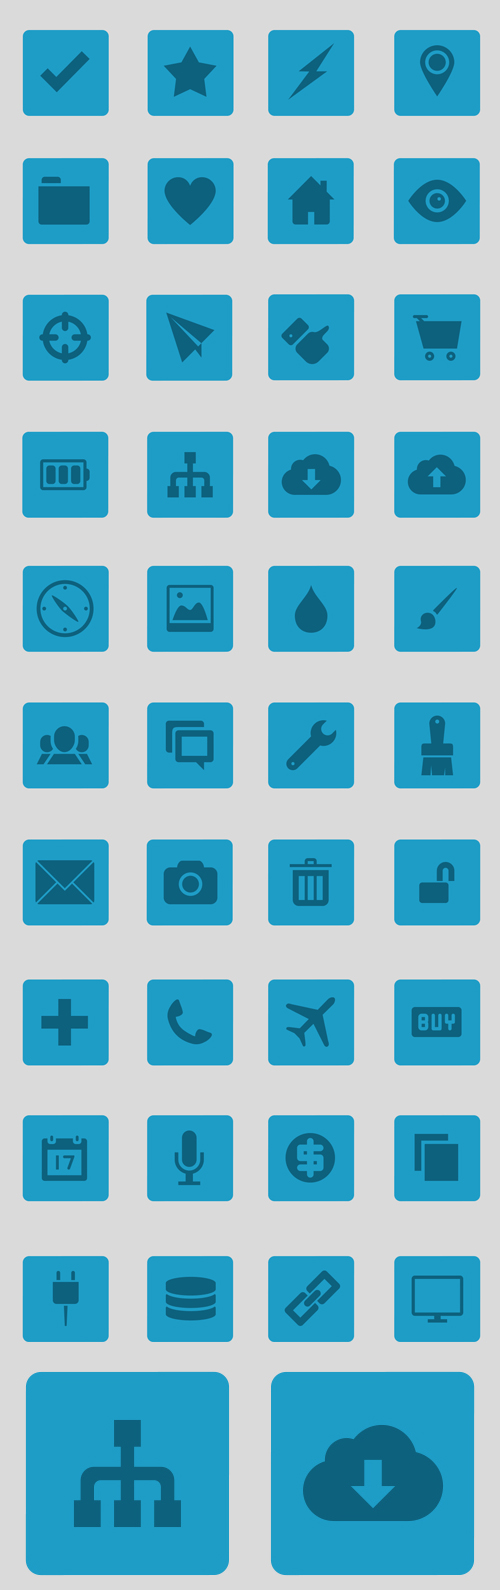 UI Icons (4 different styles) (40 Icons)